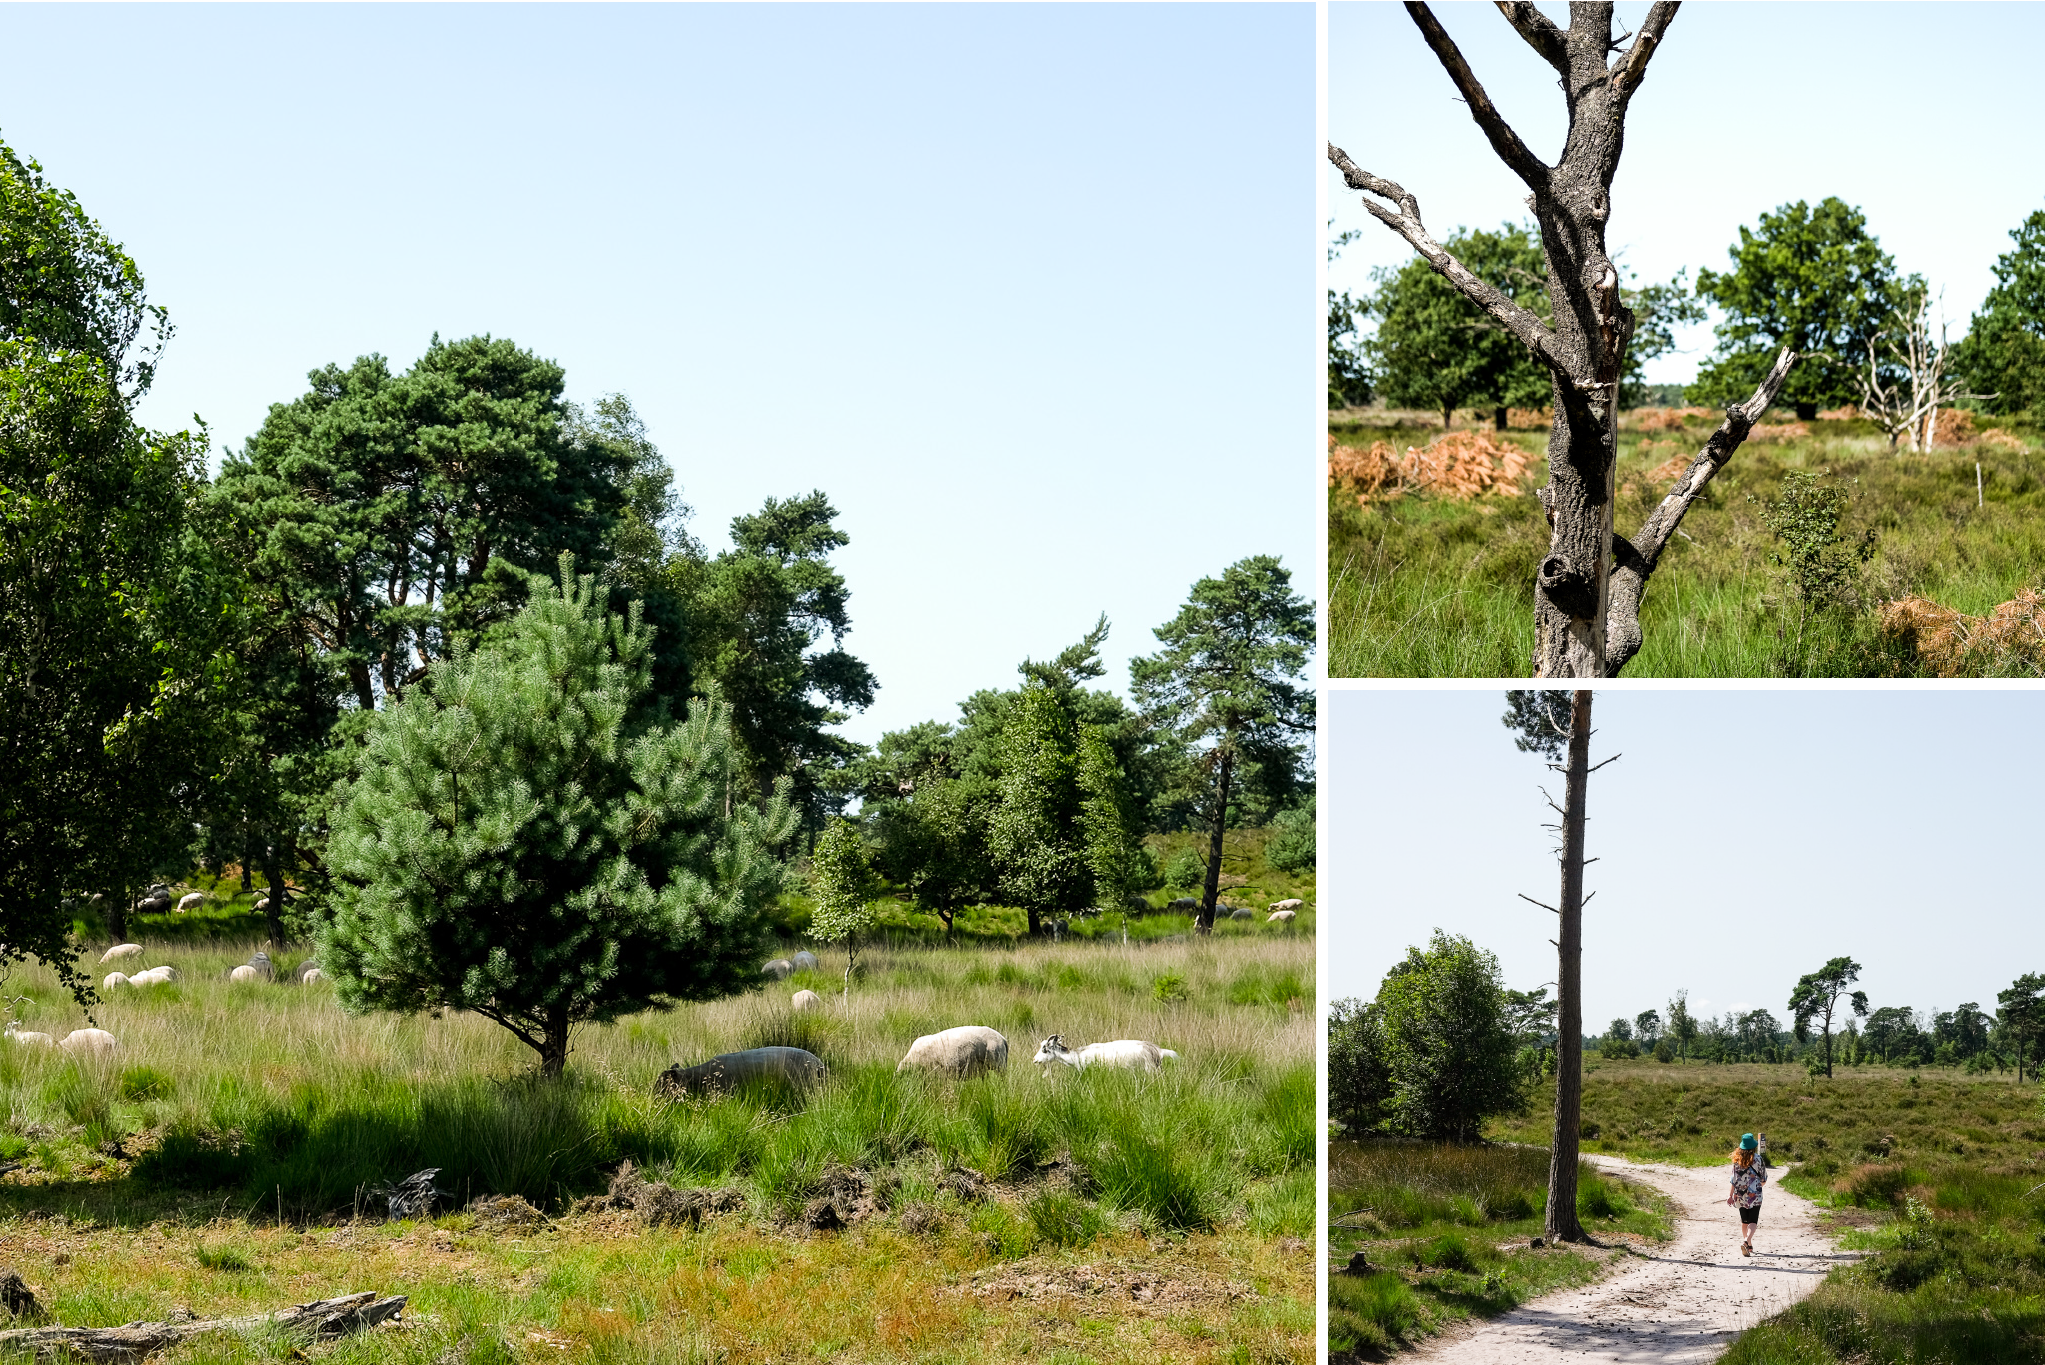 collage of views of the beautiful nature of the kalmthoutse heide